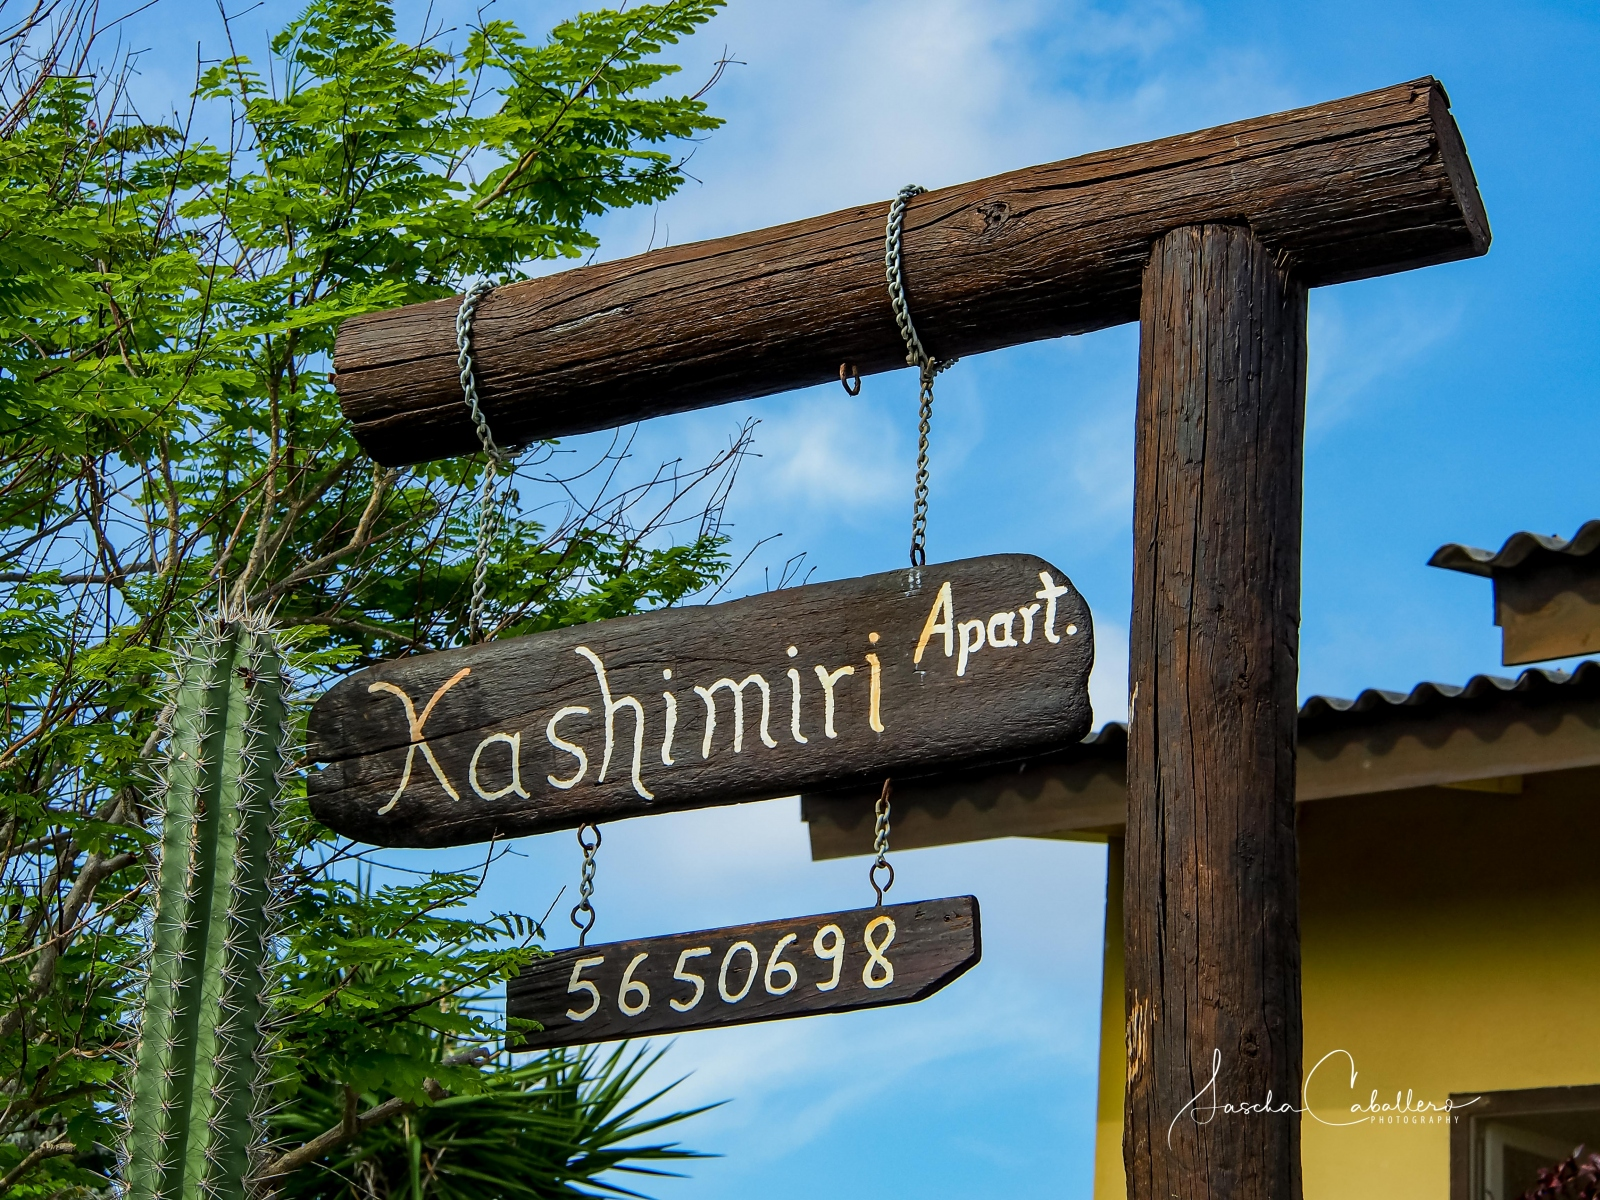 Kashimiri Apartment